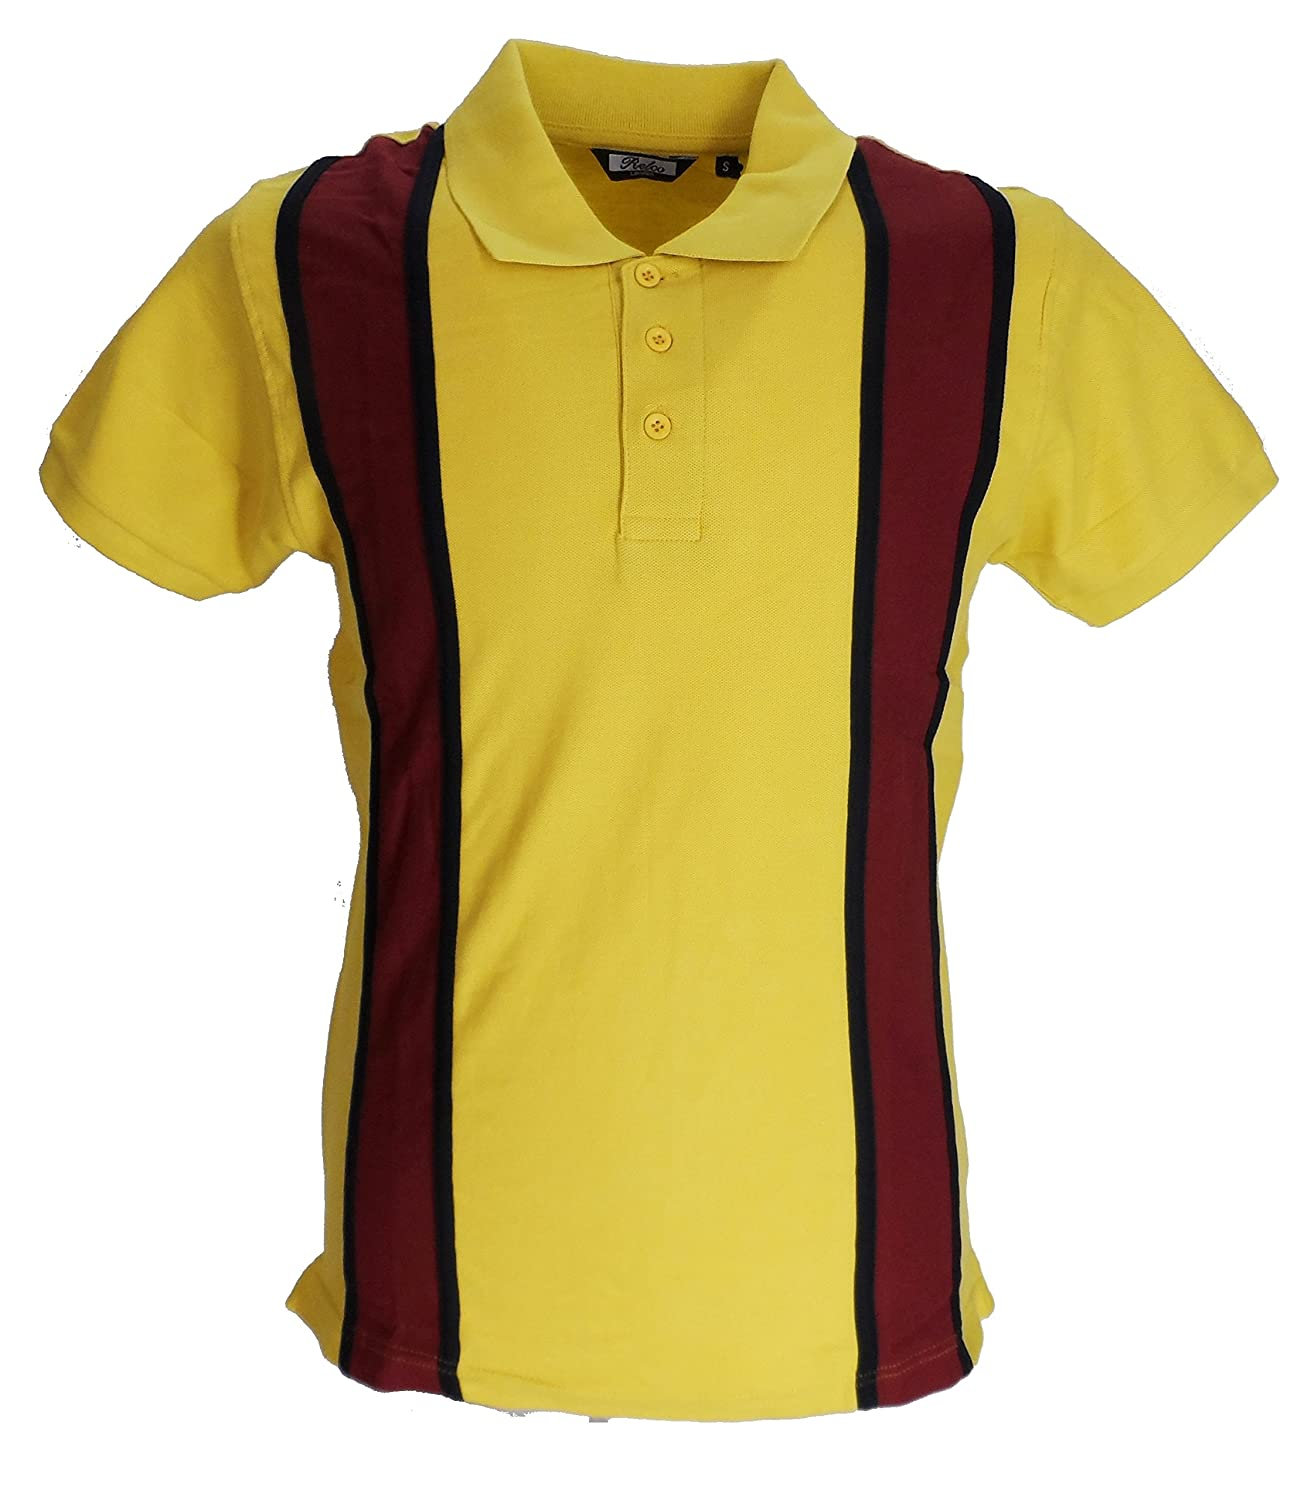 1960s – 70s Mens Shirts- Disco Shirts, Hippie Shirts Relco Mens Striped Vintage Polo Shirts Mustard/Burgundy £24.99 AT vintagedancer.com